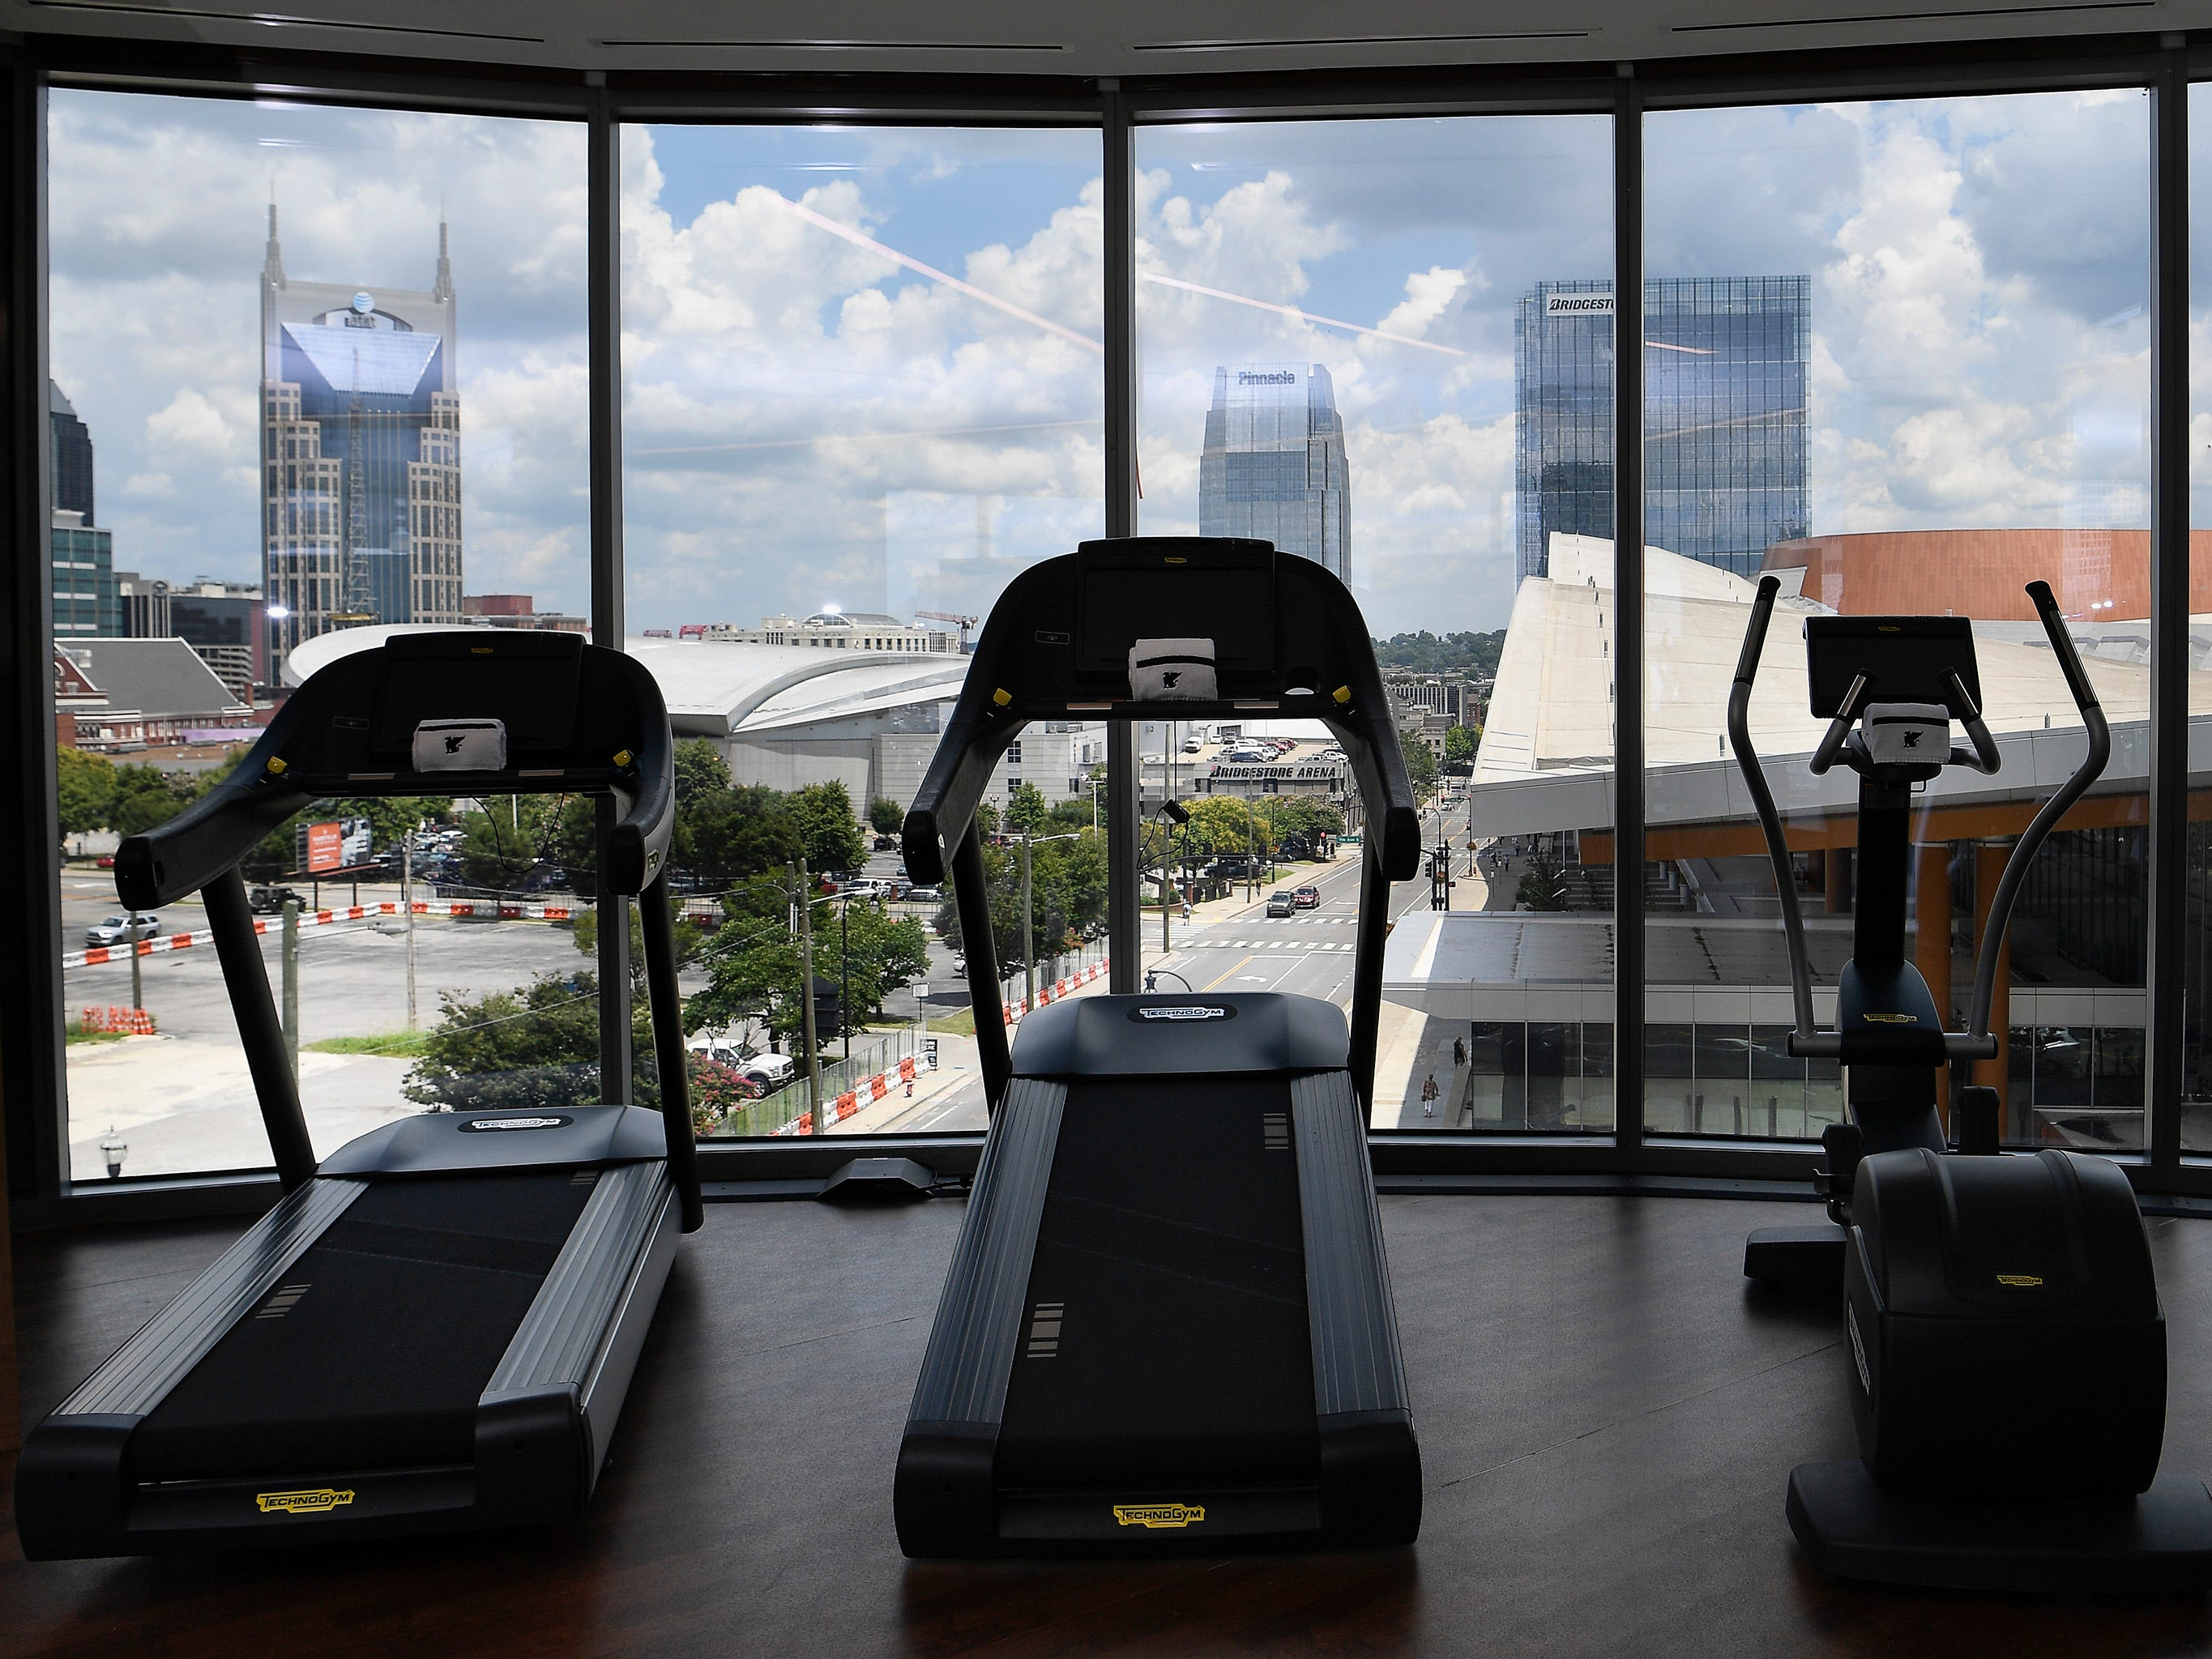 The work out room at the new JW Marriott has a view of the city Tuesday, July 17, 2018, in Nashville, Tenn. .